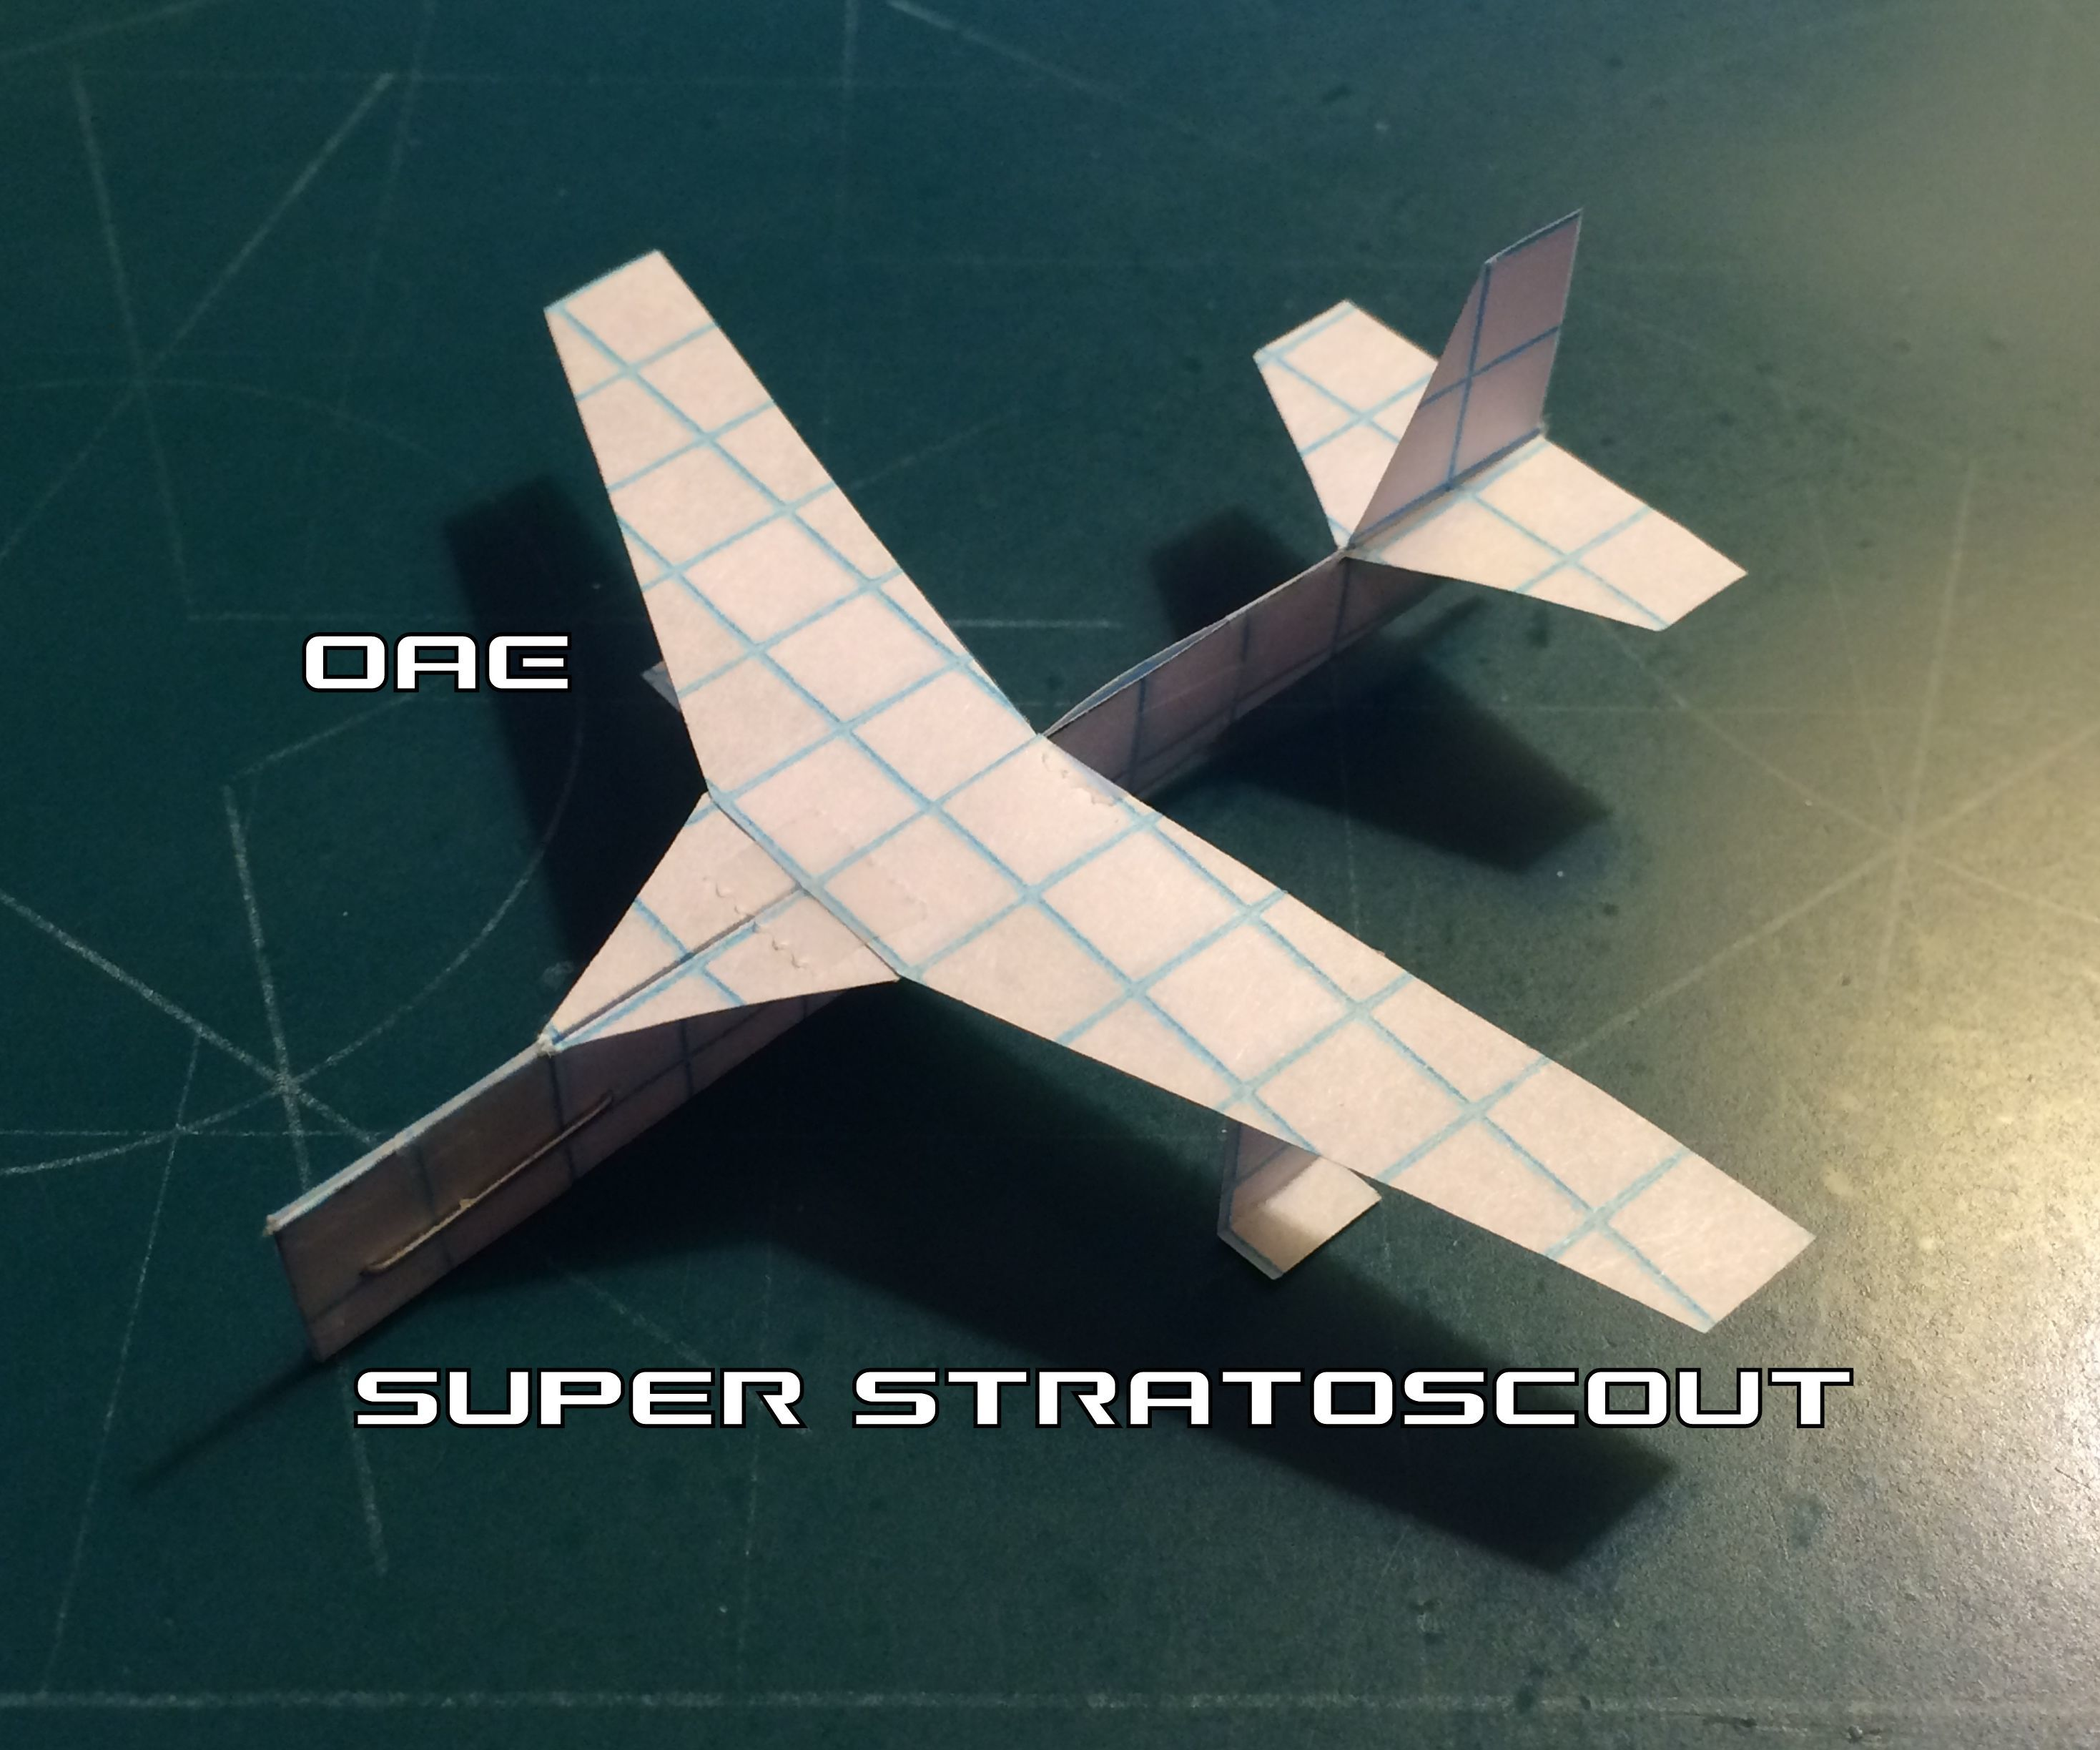 How To Make The Super StratoScout Paper Airplane